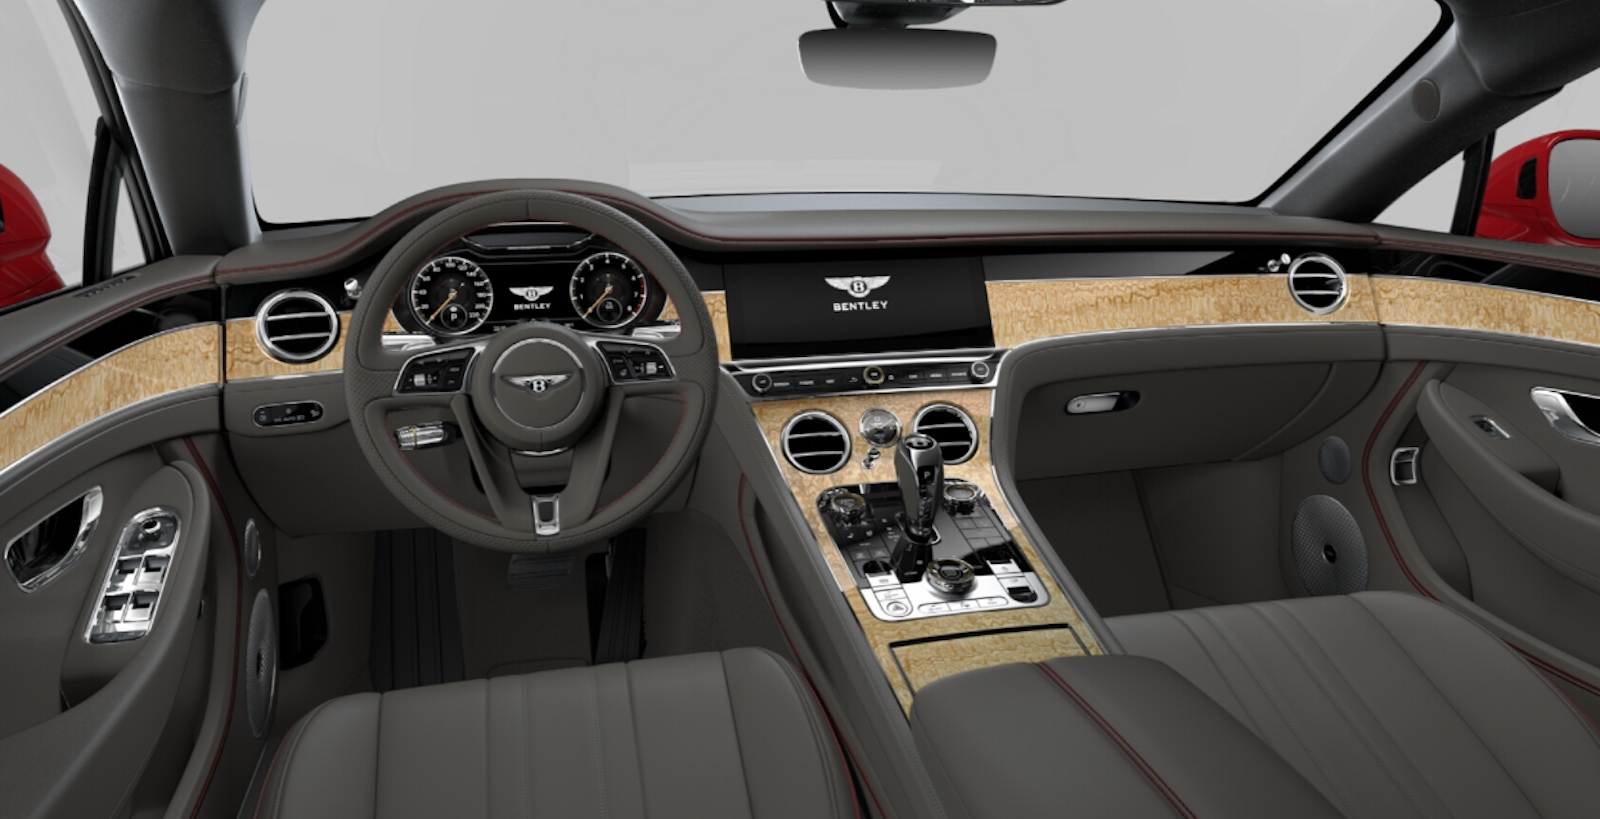 Land Rover Build Your Own >> 2018 Bentley Continental Gt Price - New Car Release Date and Review 2018 | Amanda Felicia